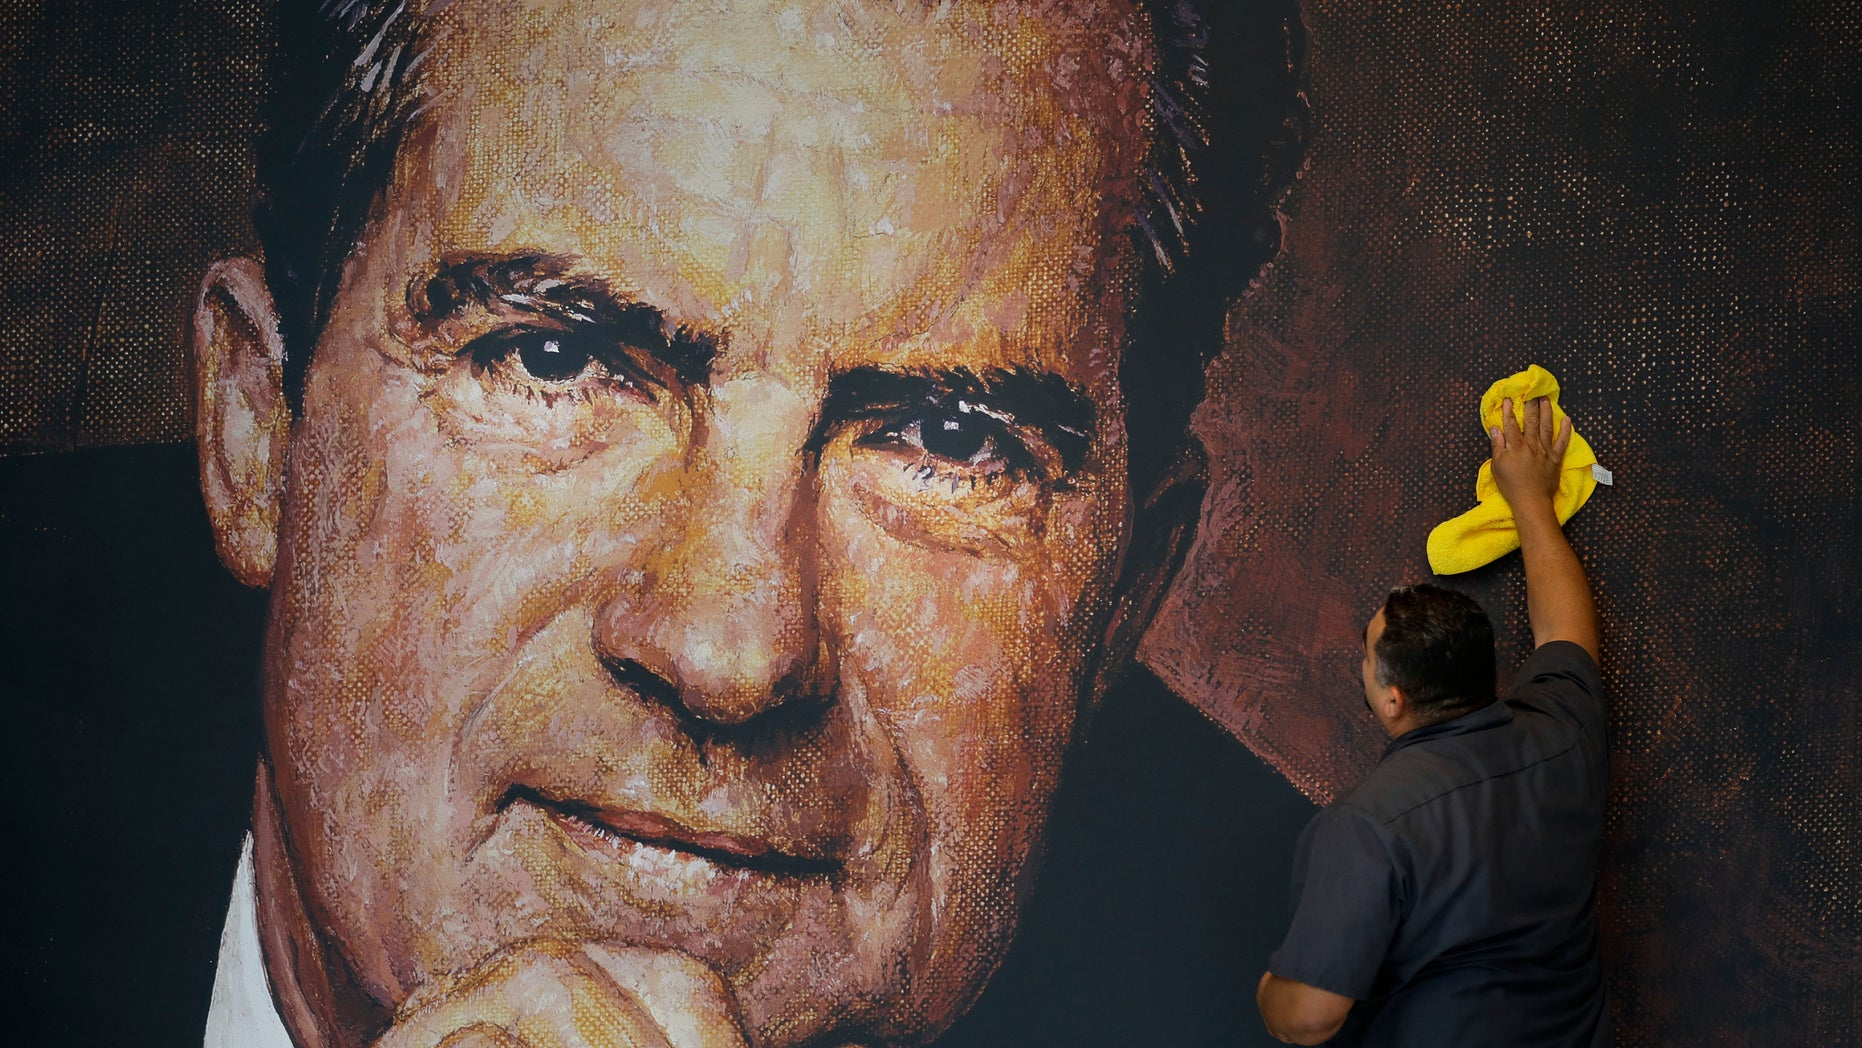 Oct. 5, 2016: Tayron Santos cleans the newly-installed wall mural of former President Richard Nixon in the lobby area of the Richard Nixon Presidential Library and Museum in Yorba Linda, Calif.